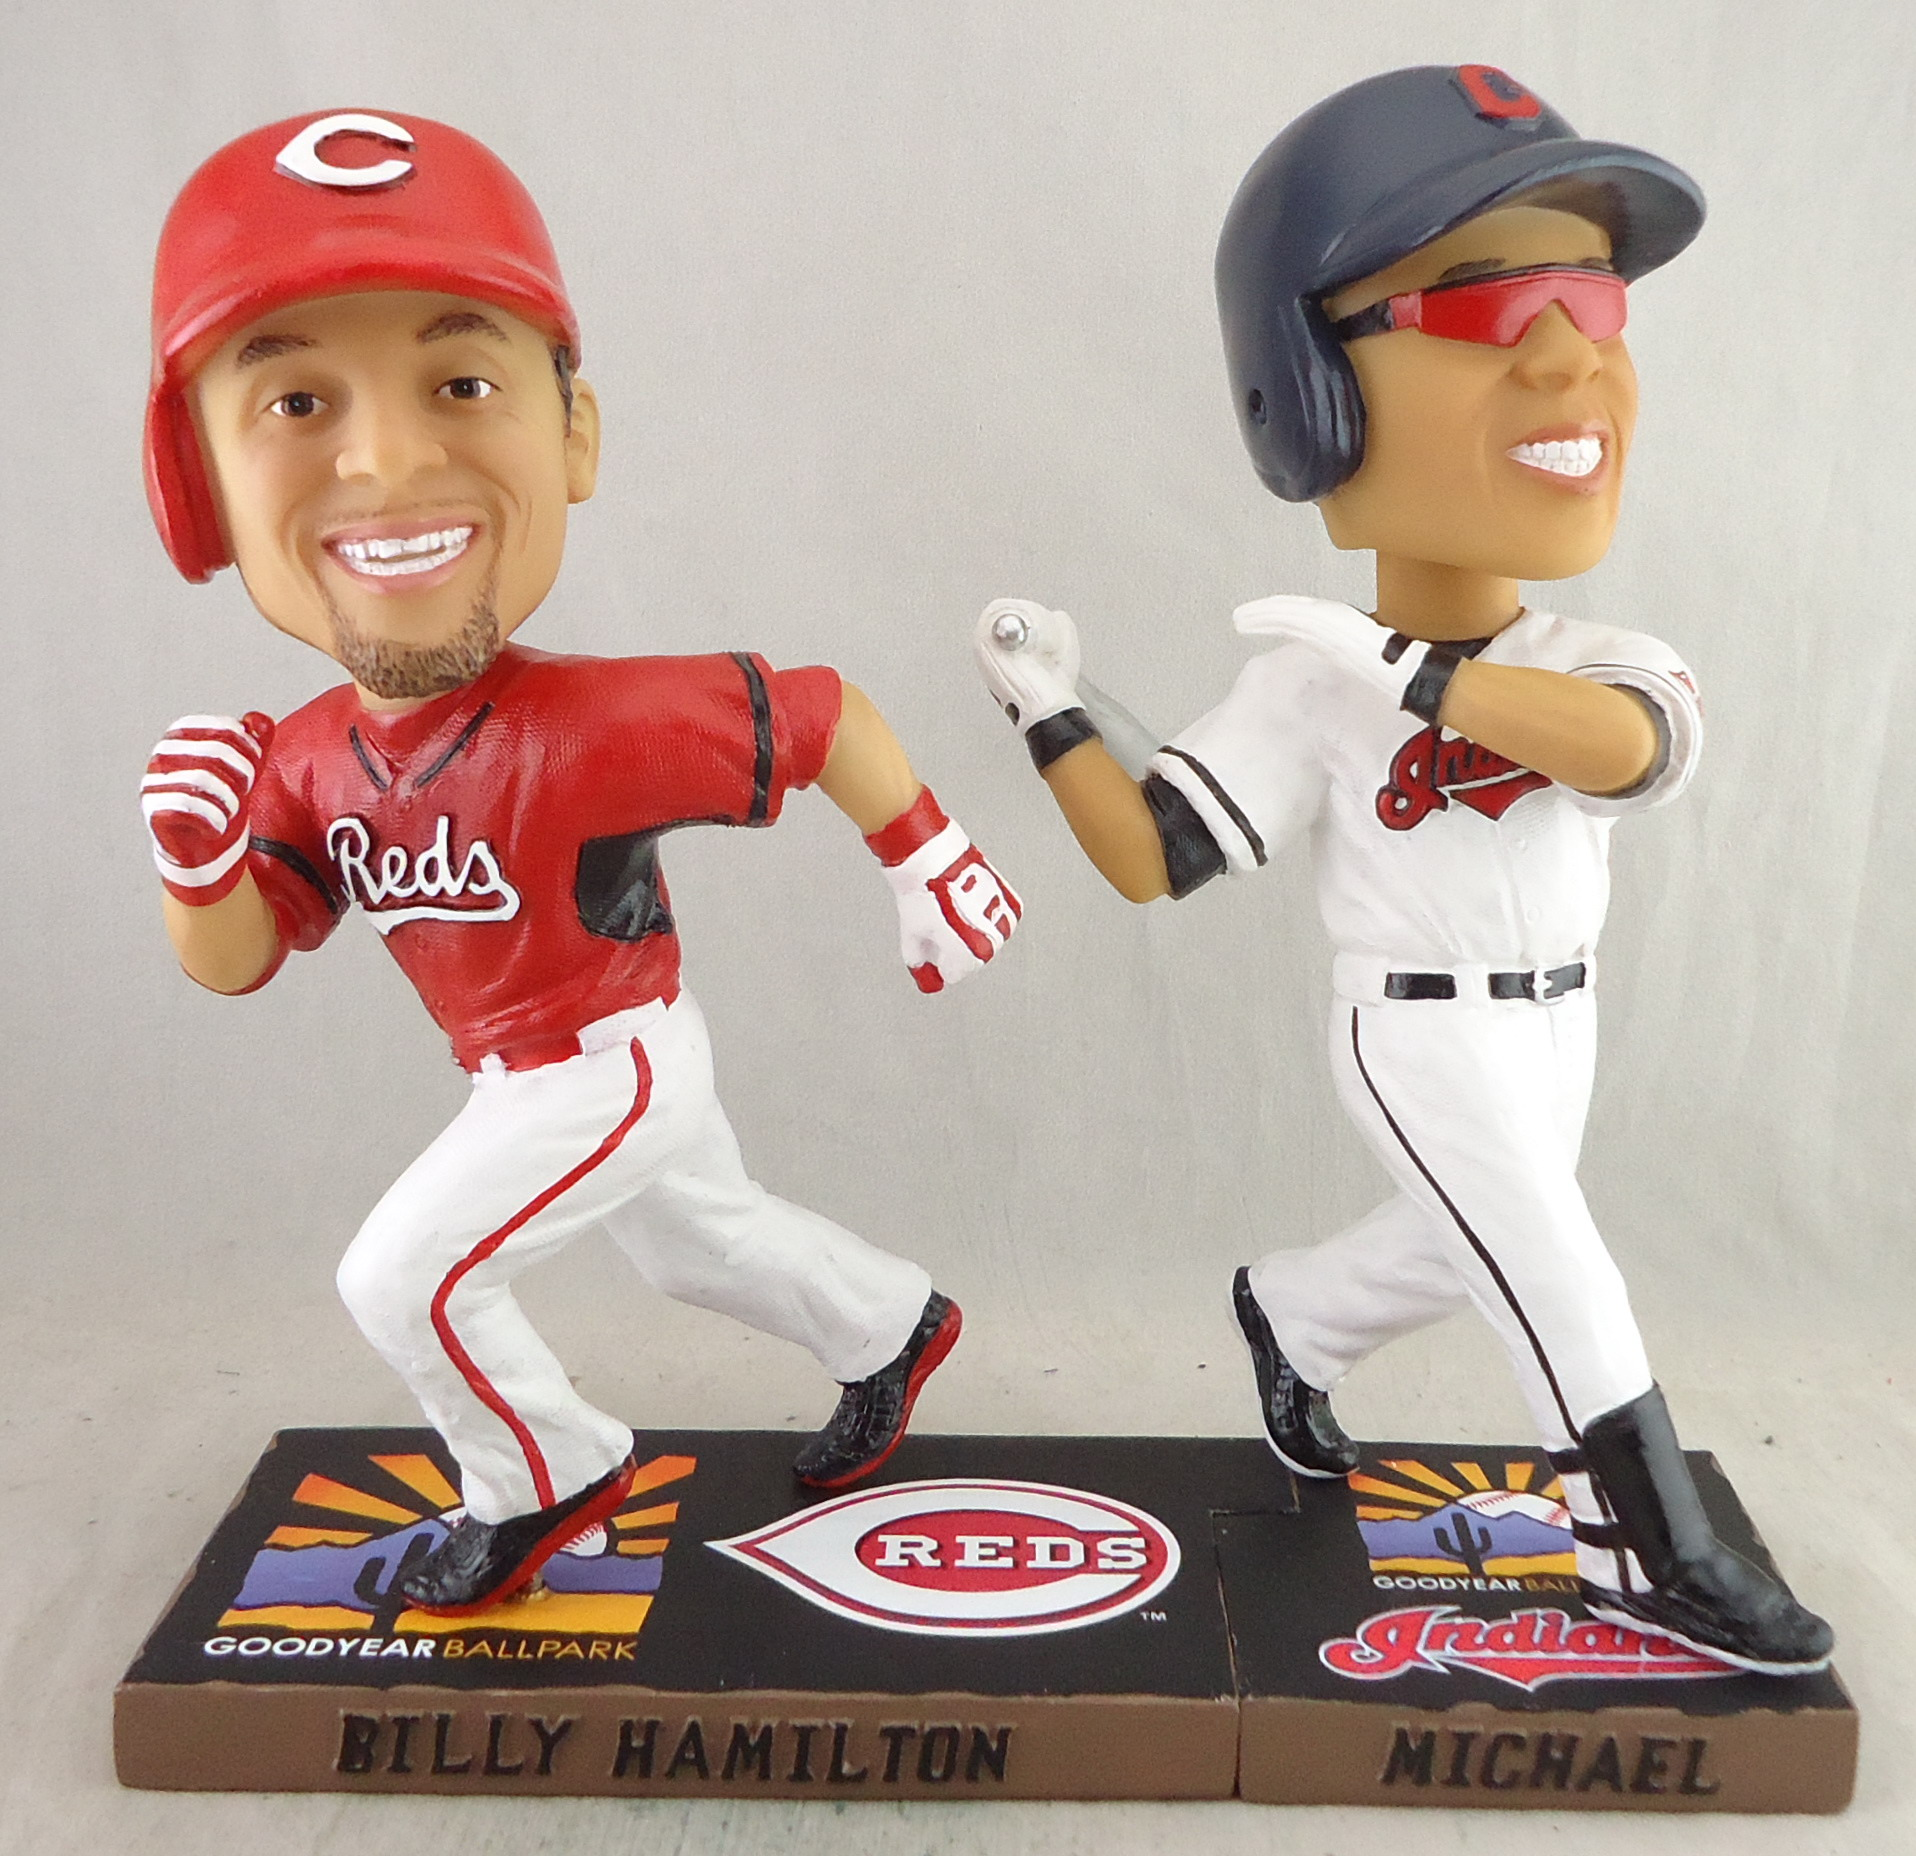 Cleveland Indians - Billy Hamilton 111349 & Michael Brantley 111350, 7in Bobblehead.jpg